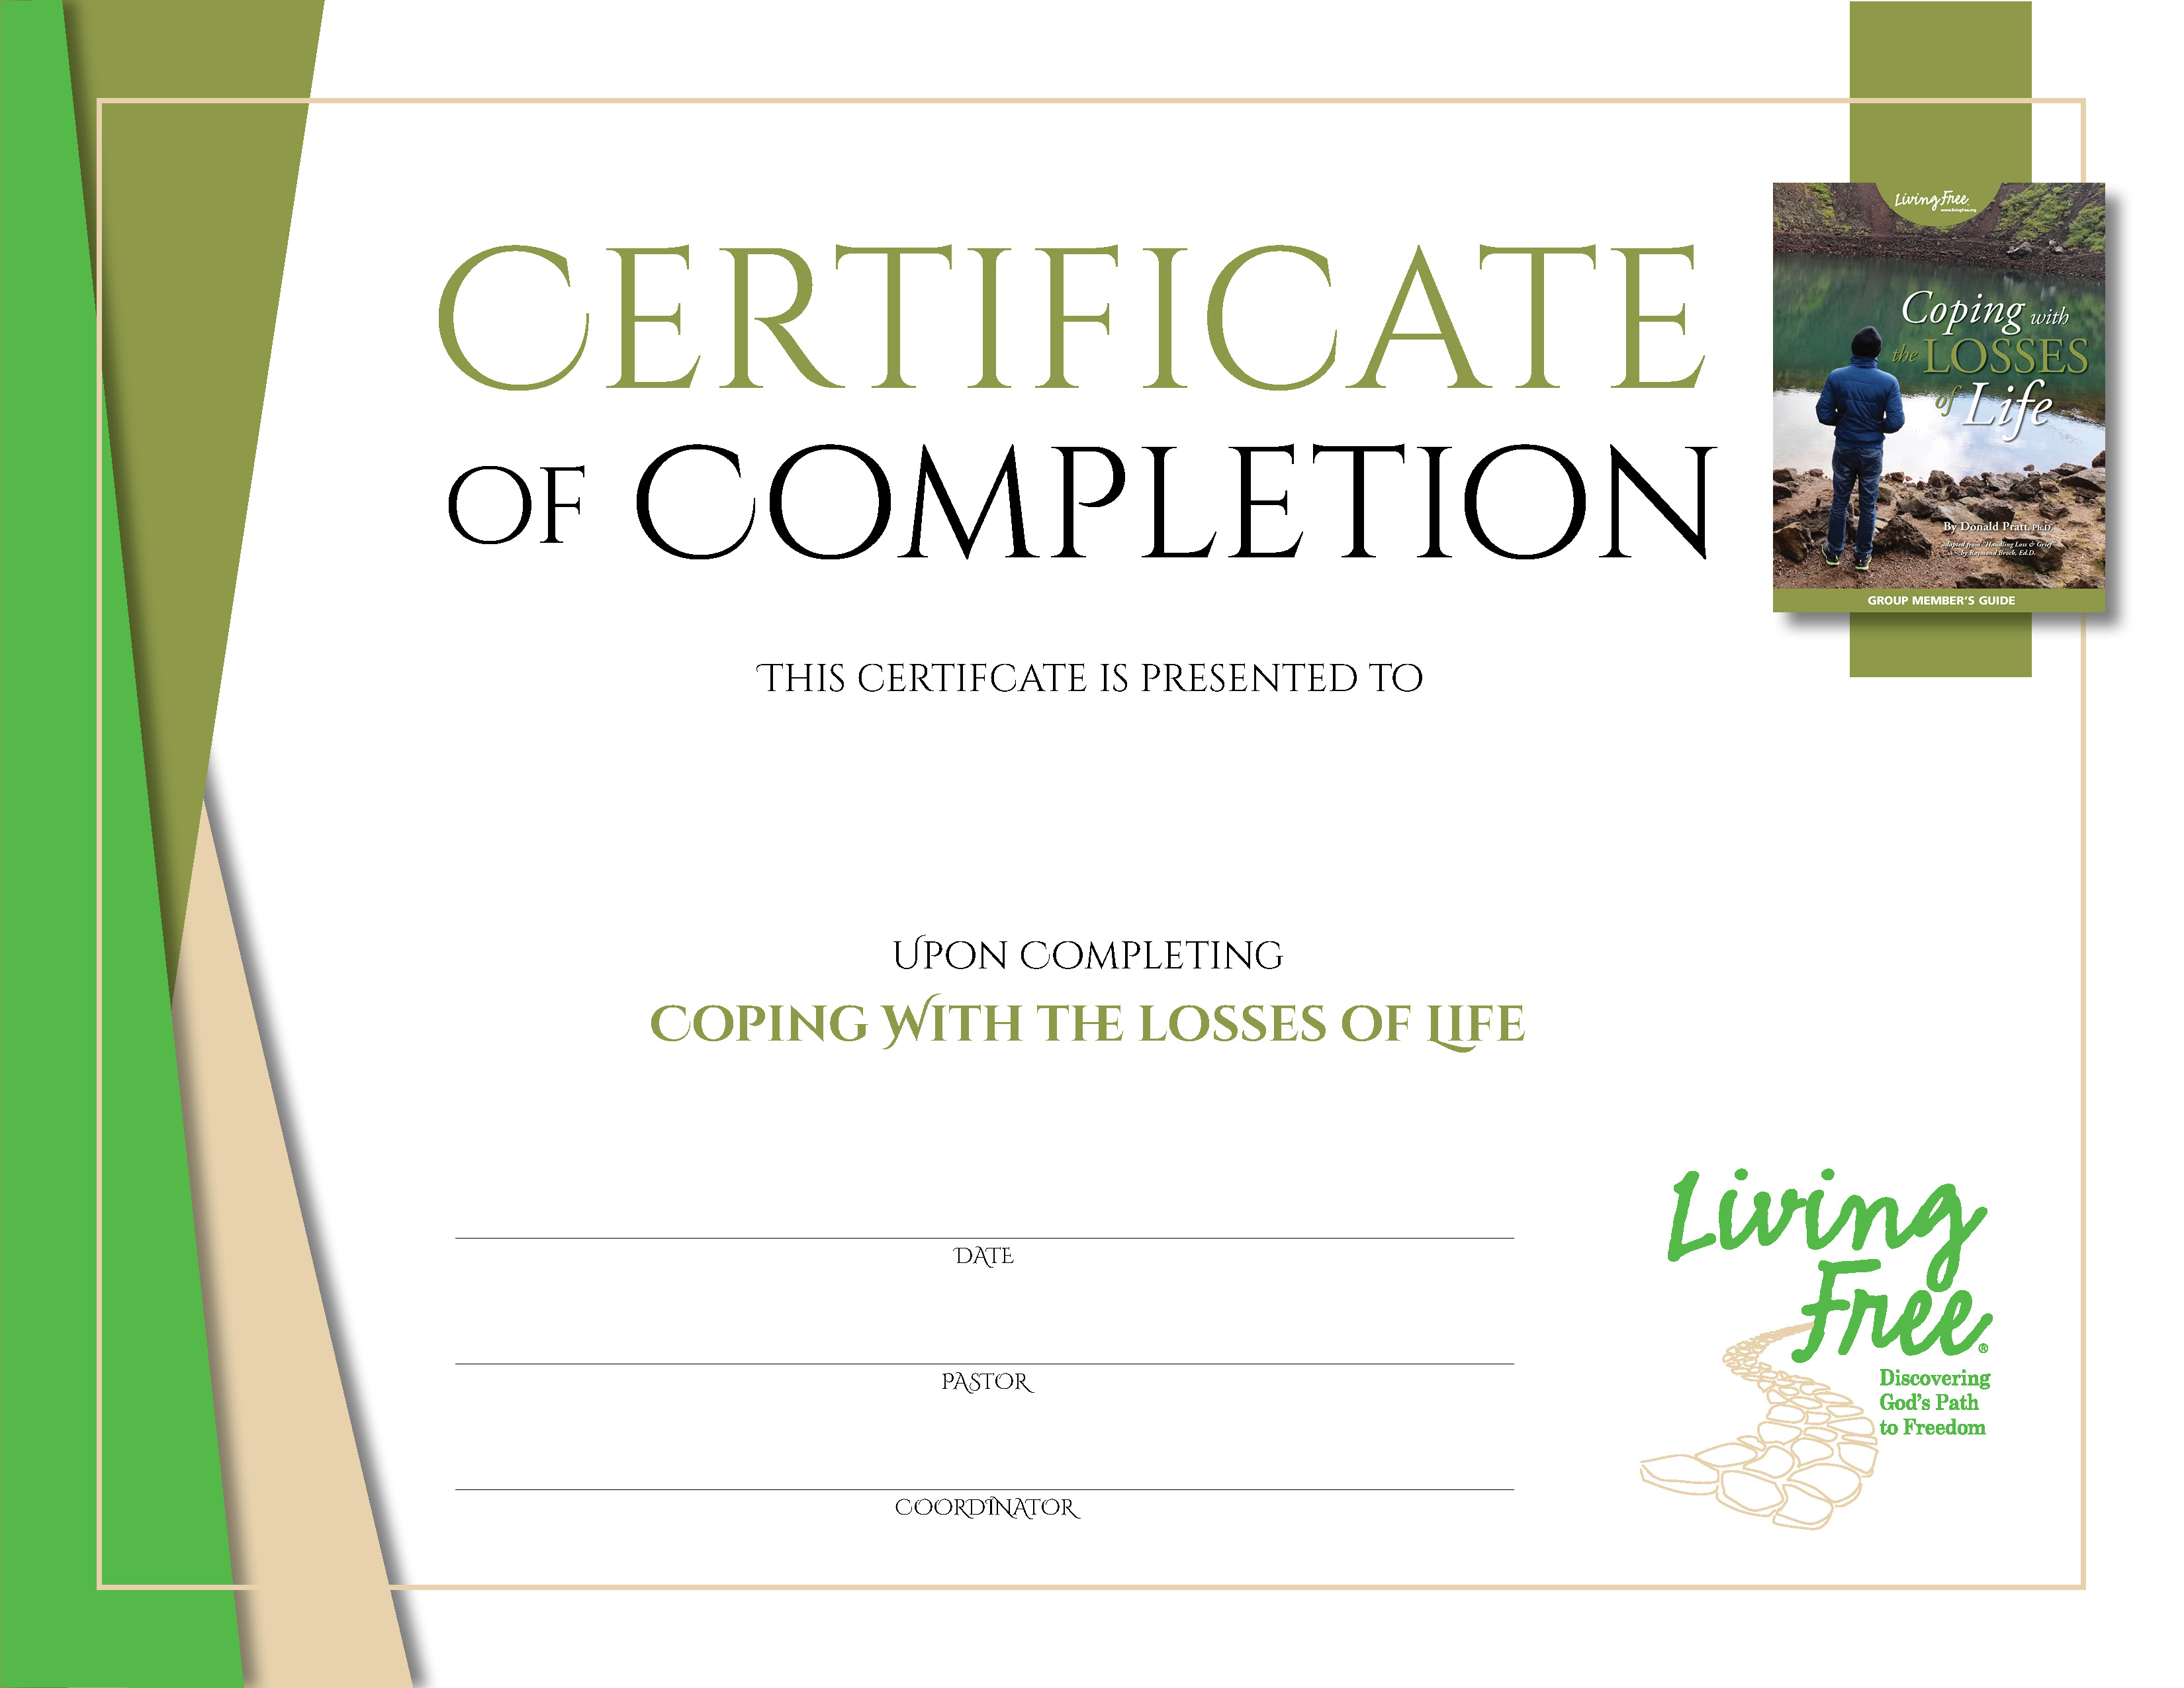 Coping with the Losses of Life Certificate